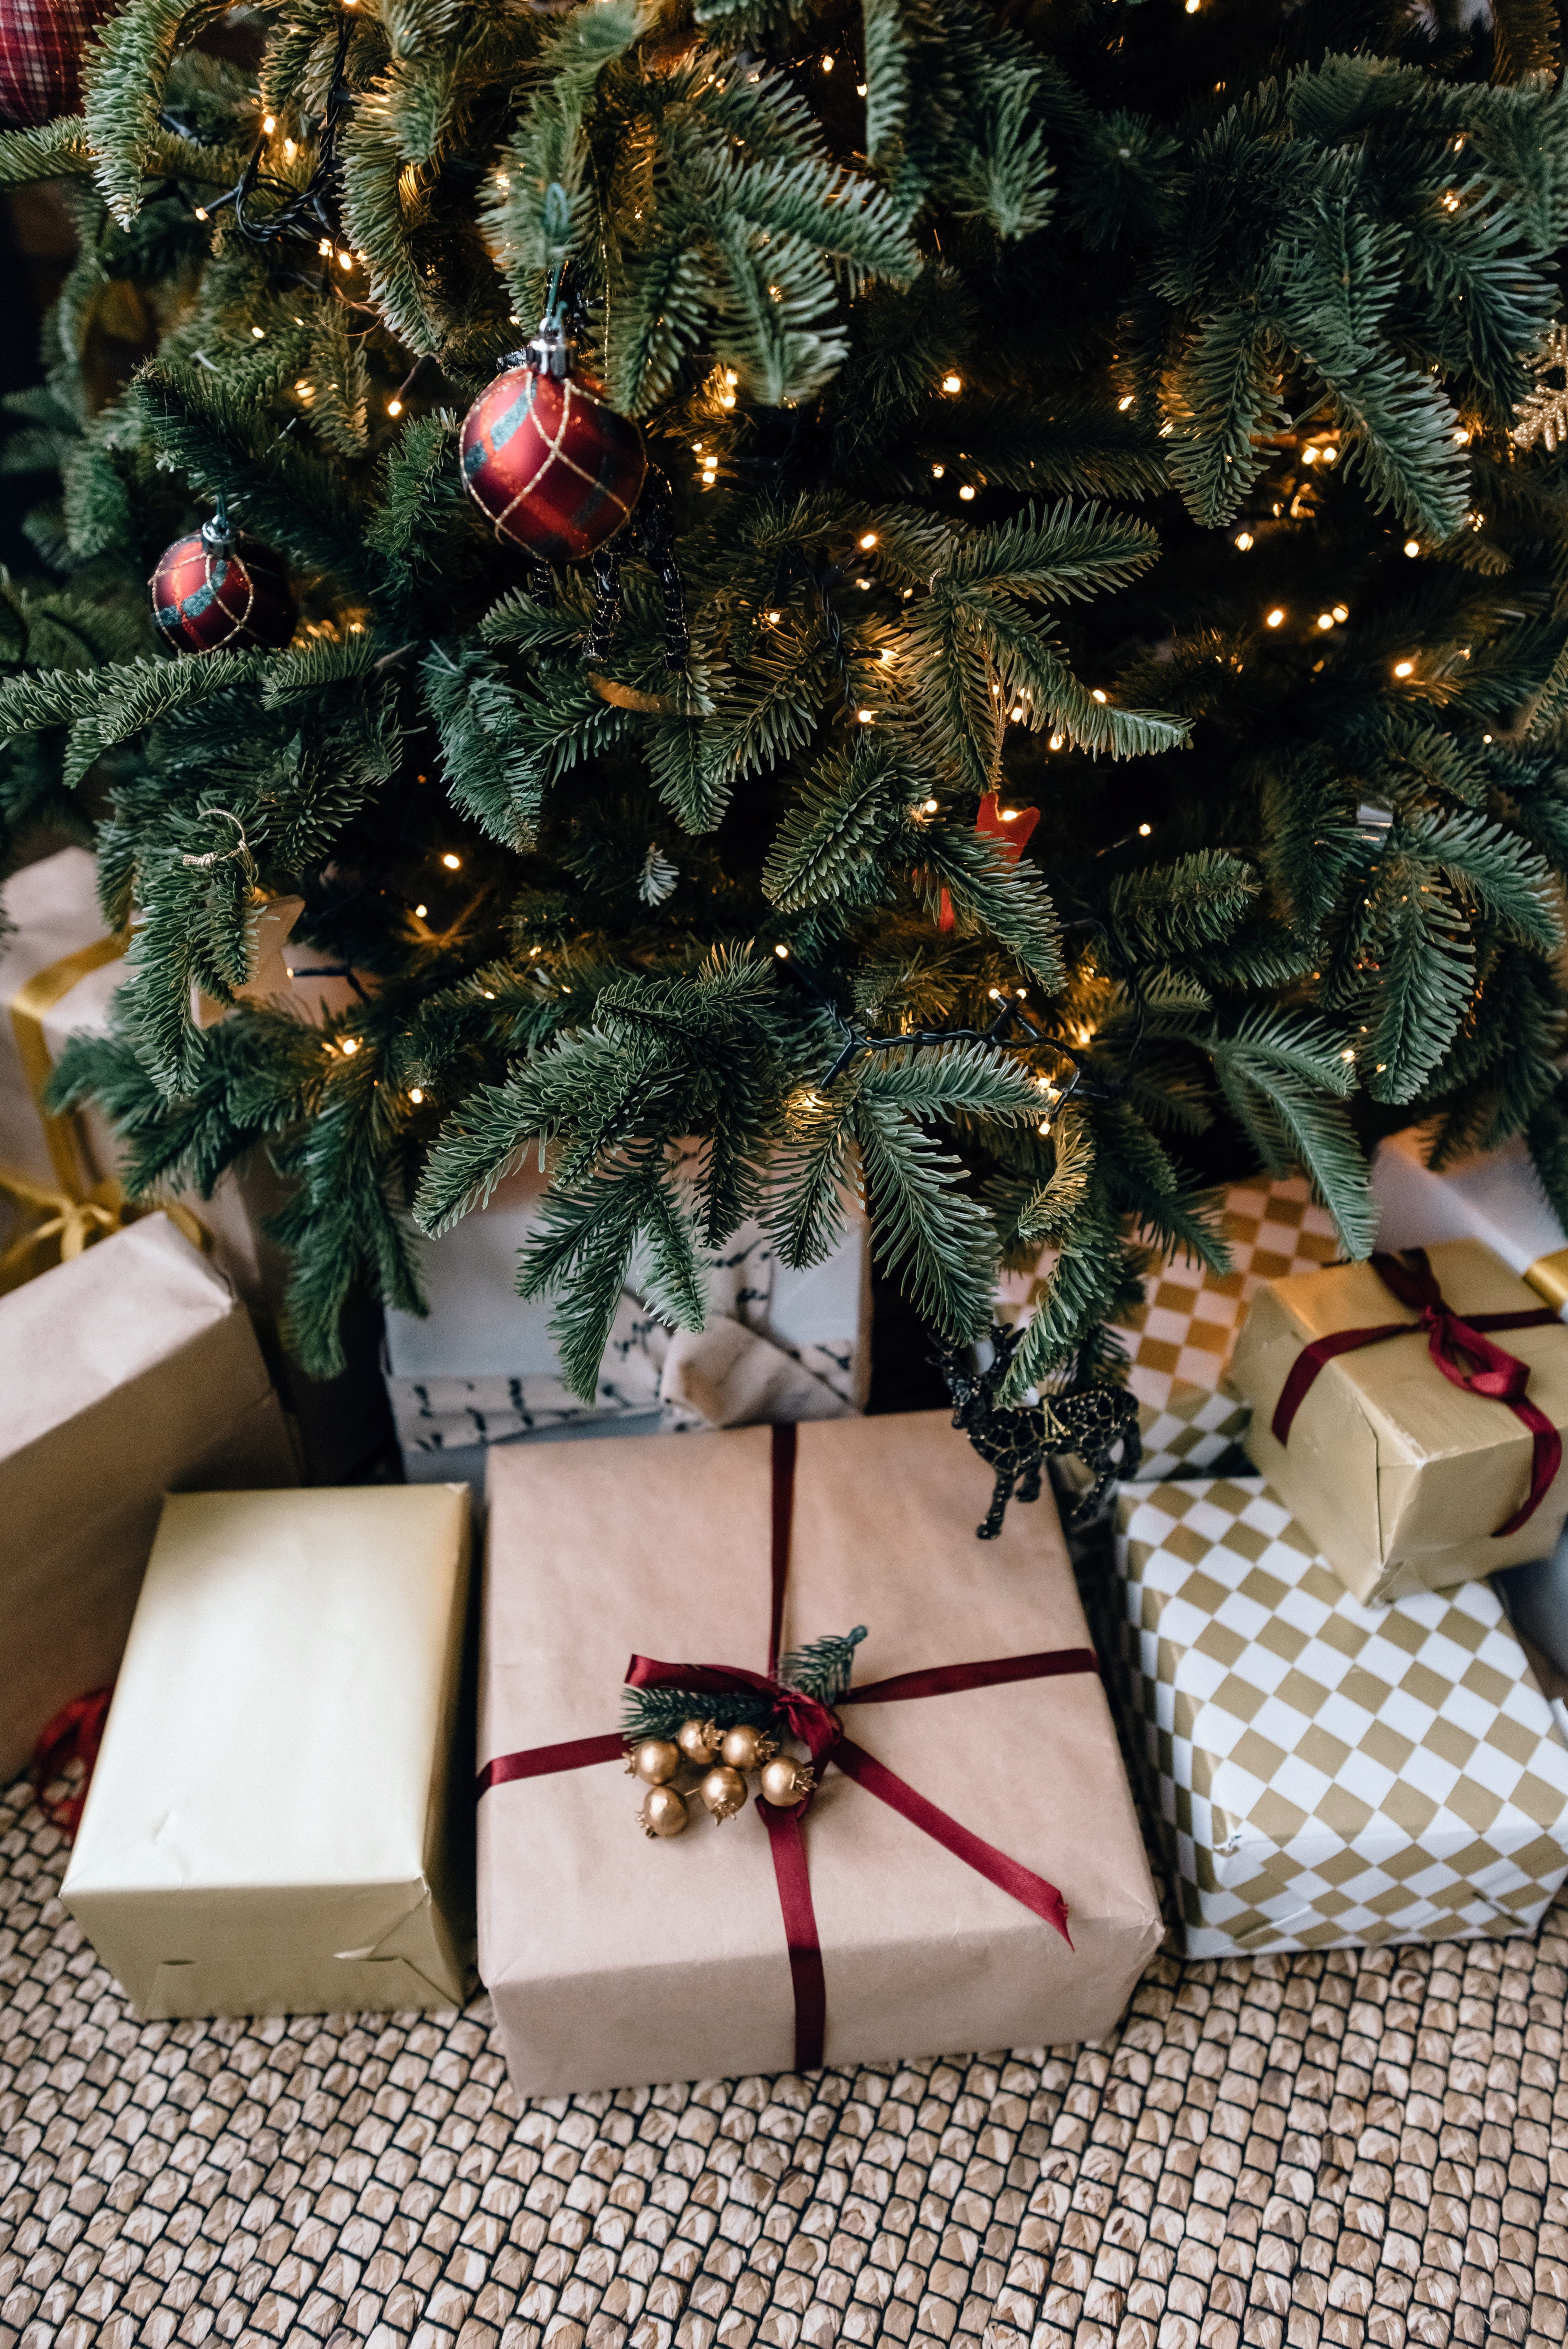 Close up of presents under a tree, wrapped in brown paper.